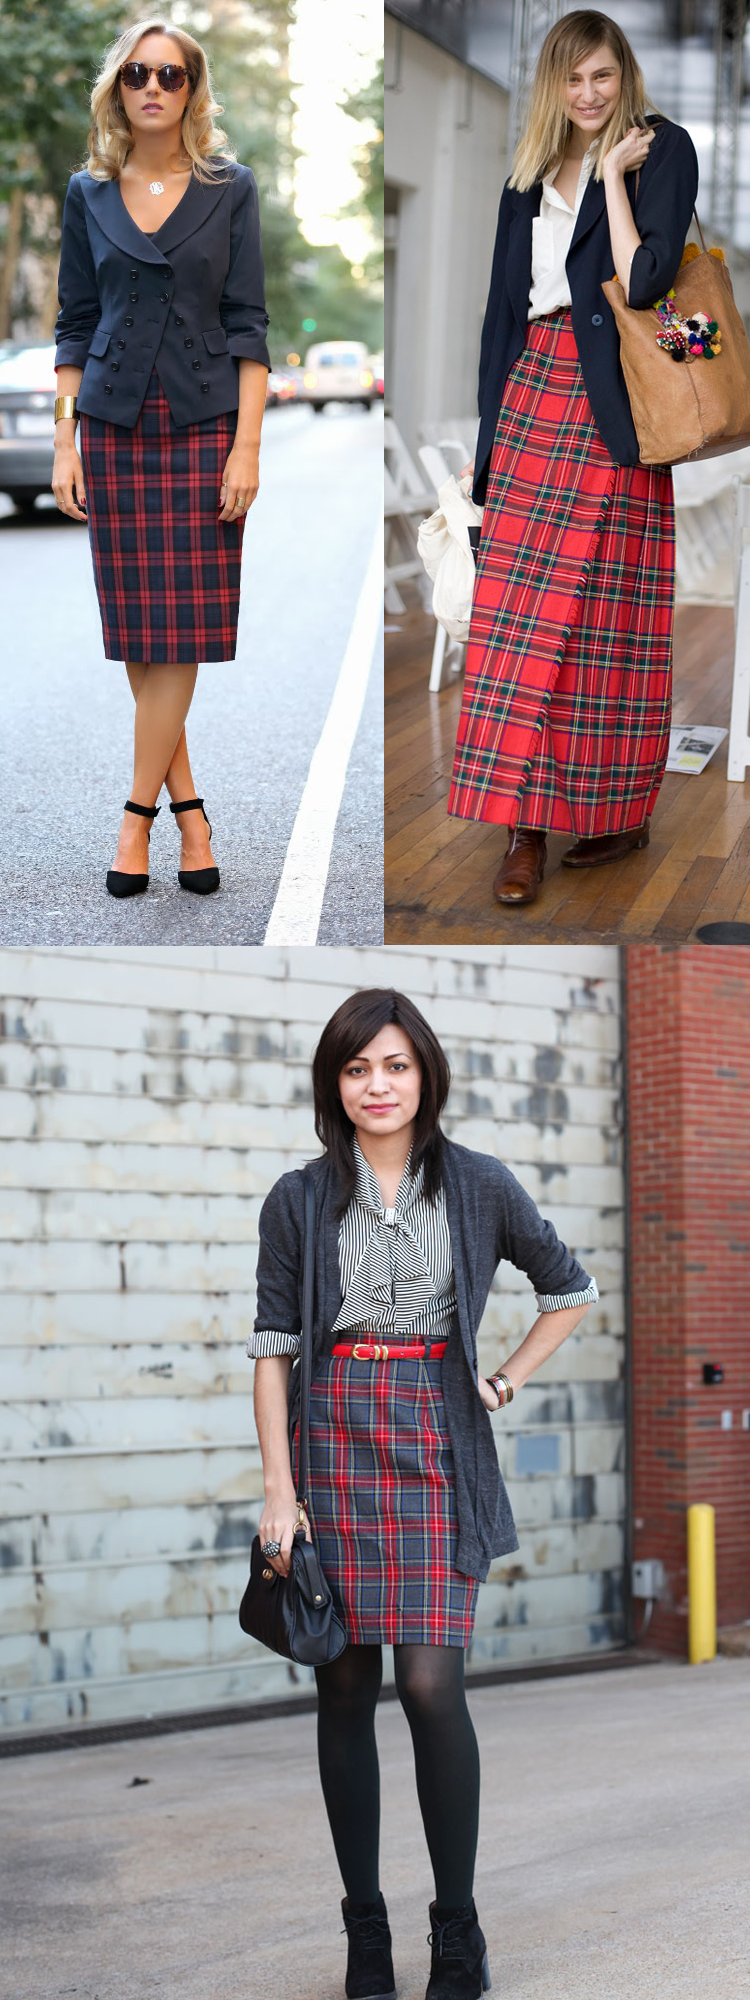 5 Ways To Wear Tartan